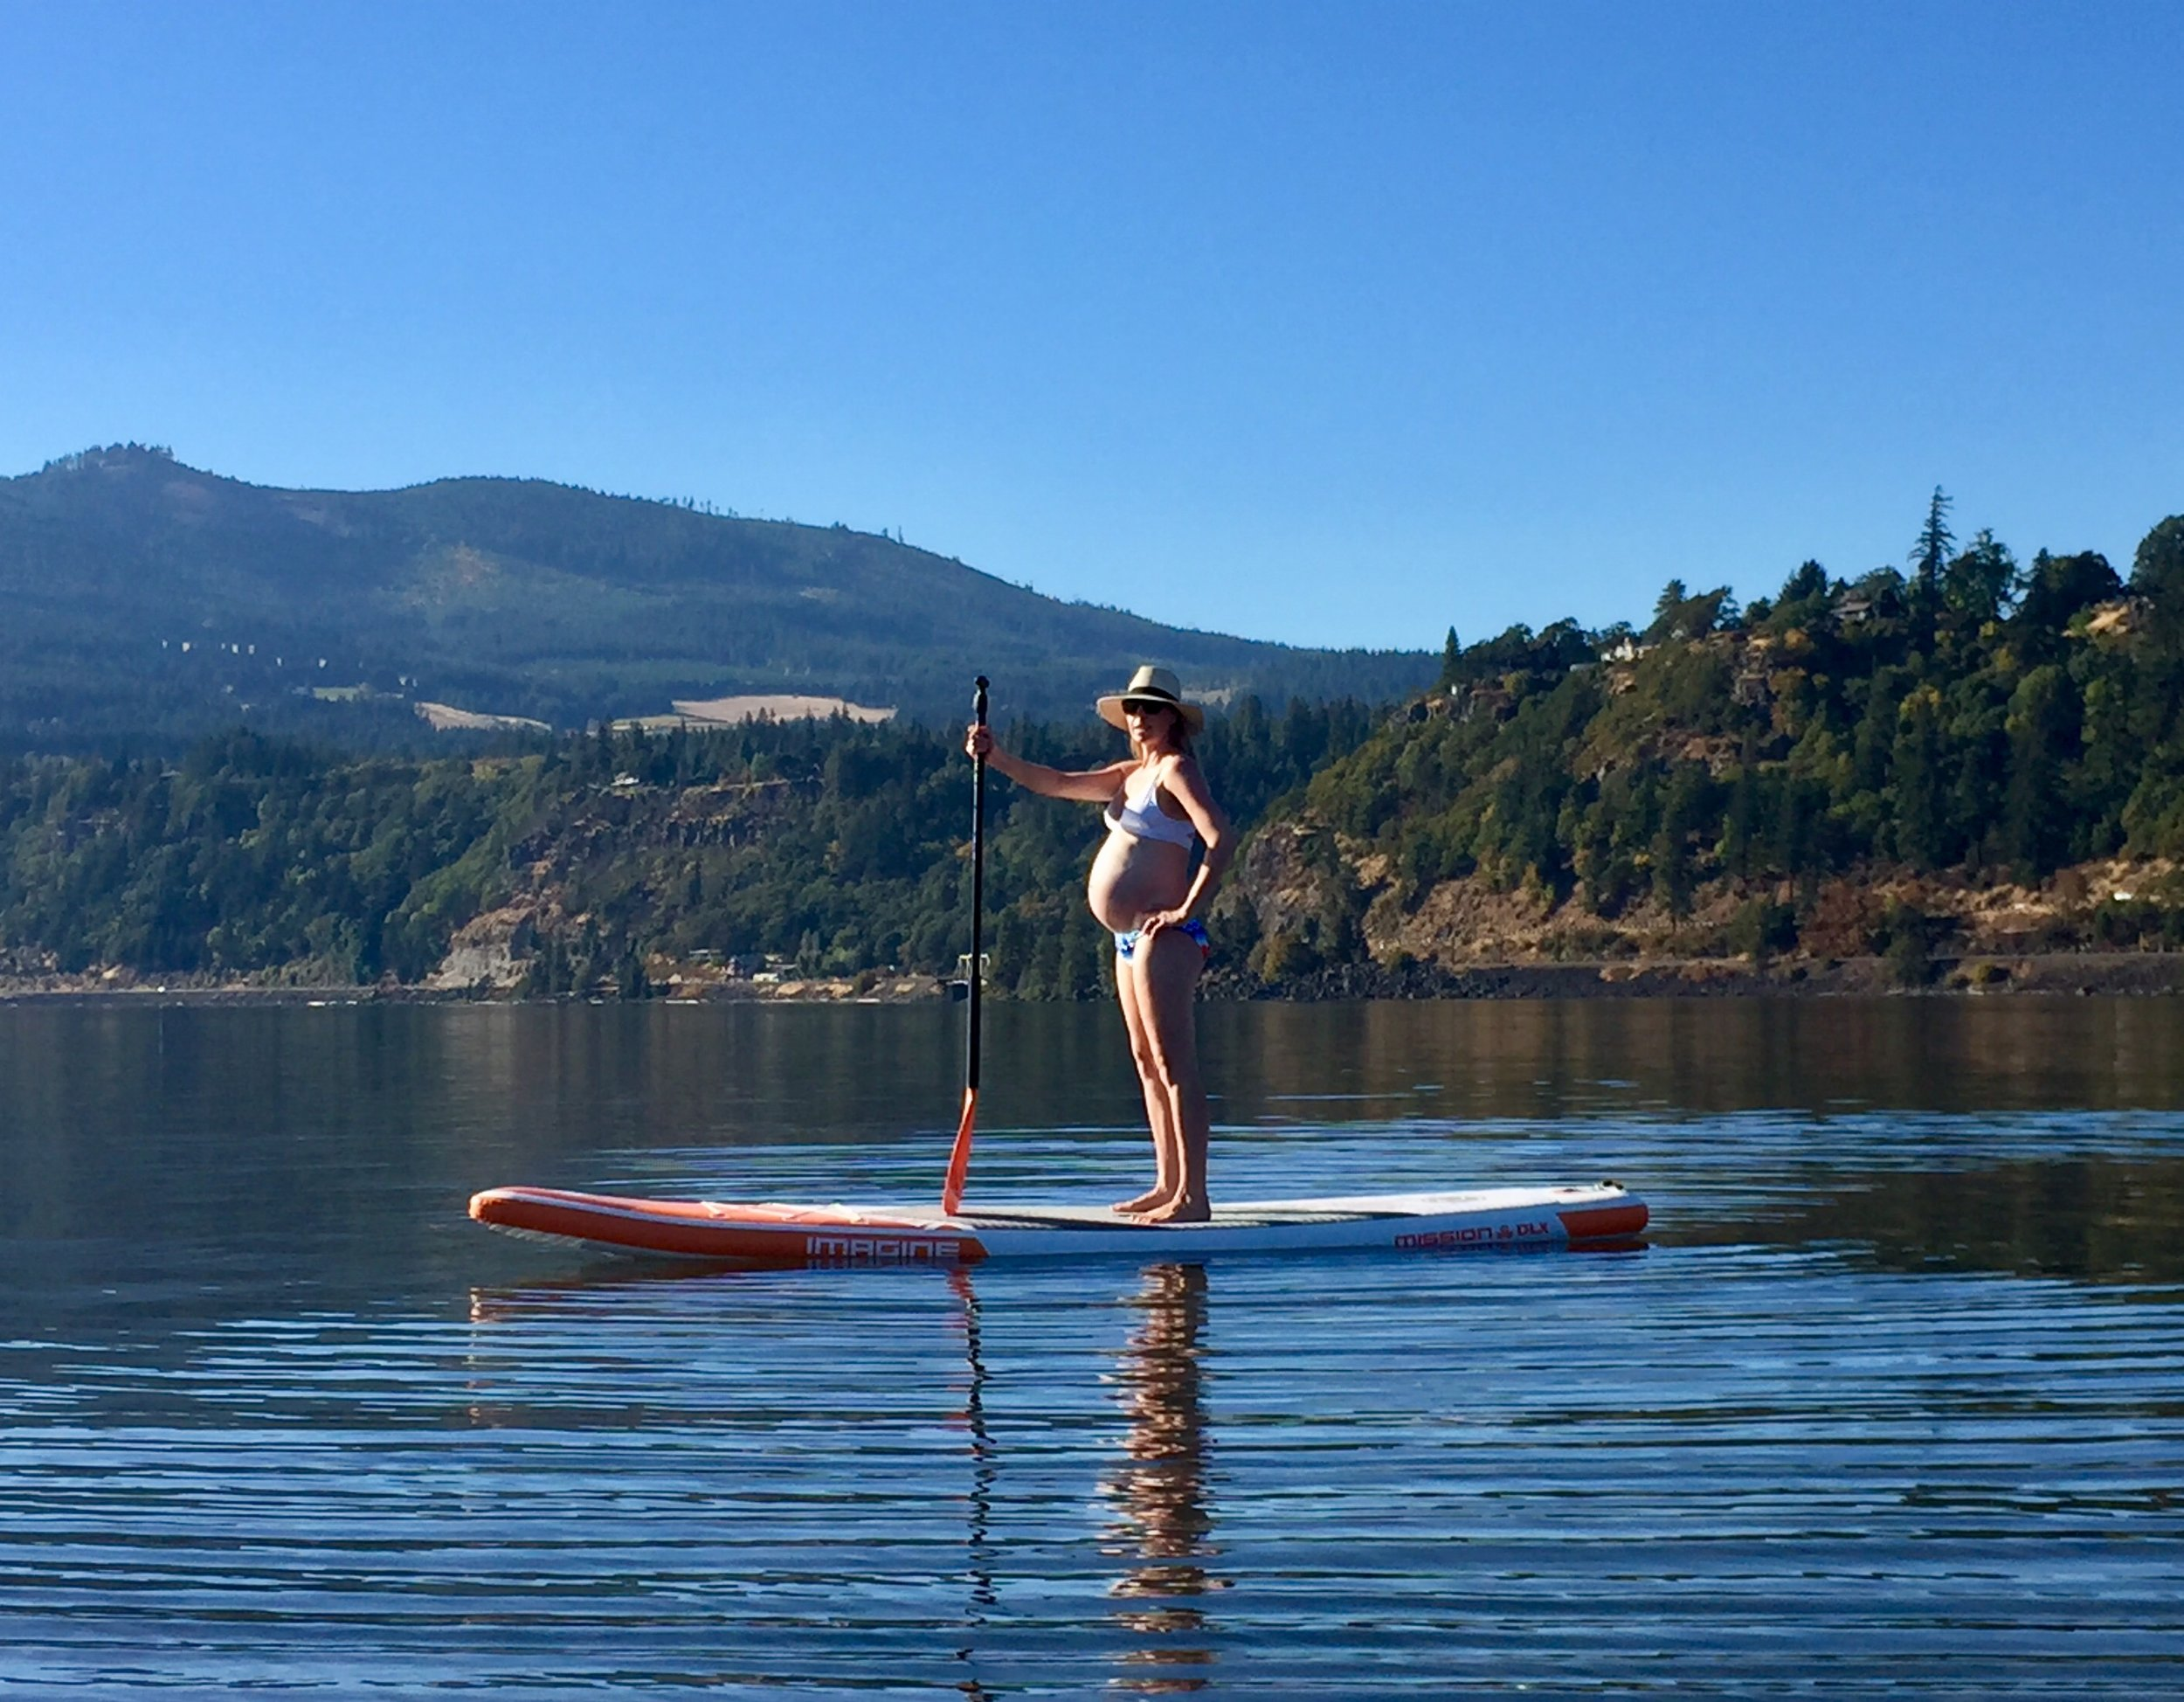 8 months, paddle boarding